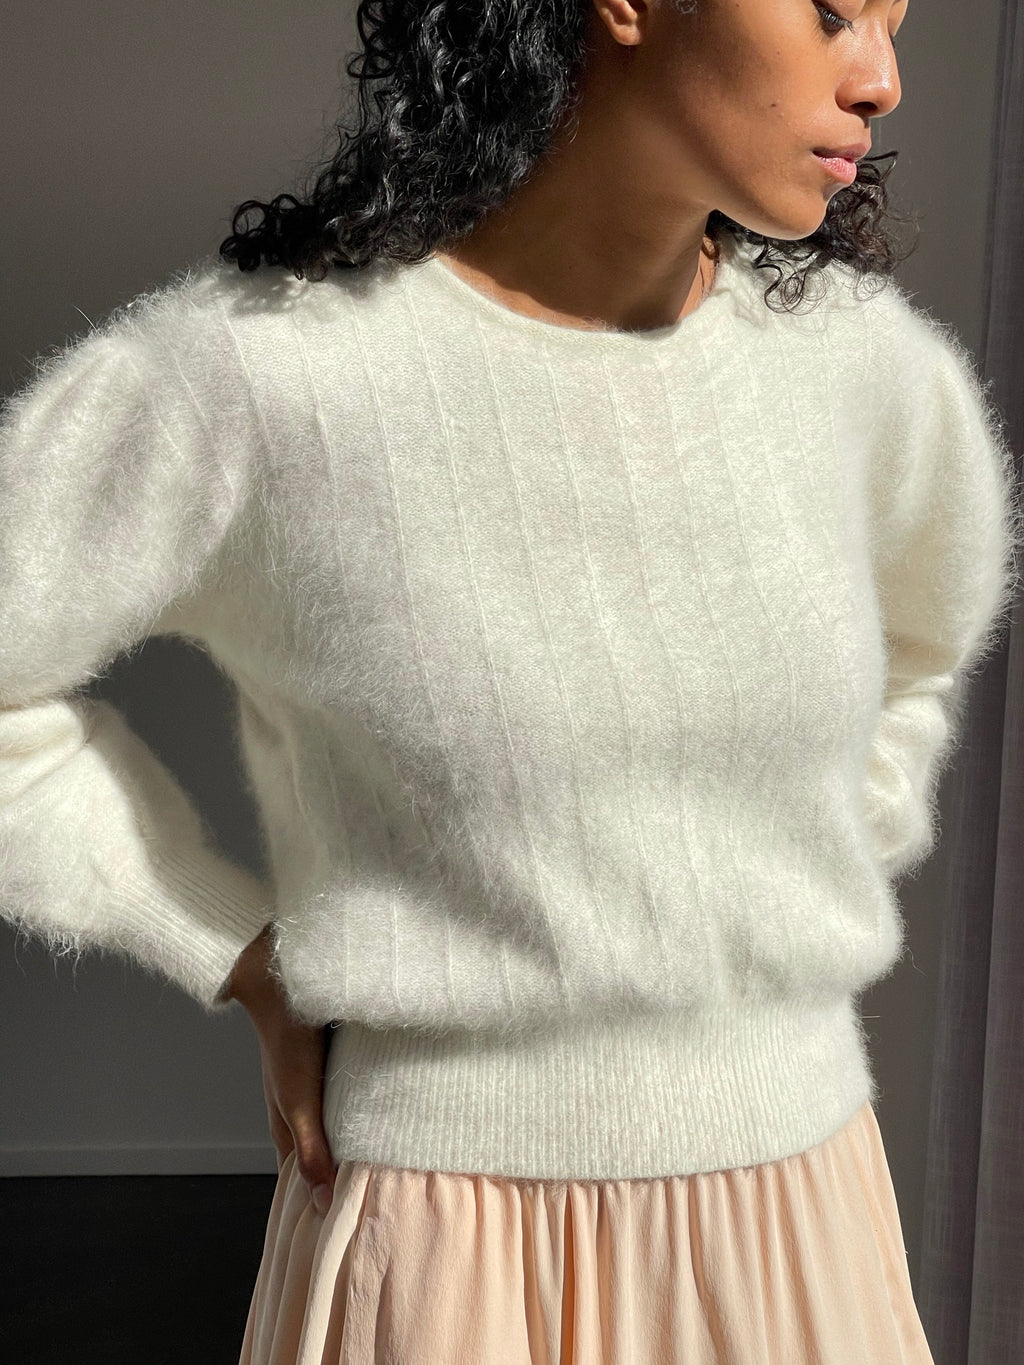 Softest Vintage Cream Angora Knit - Size Medium